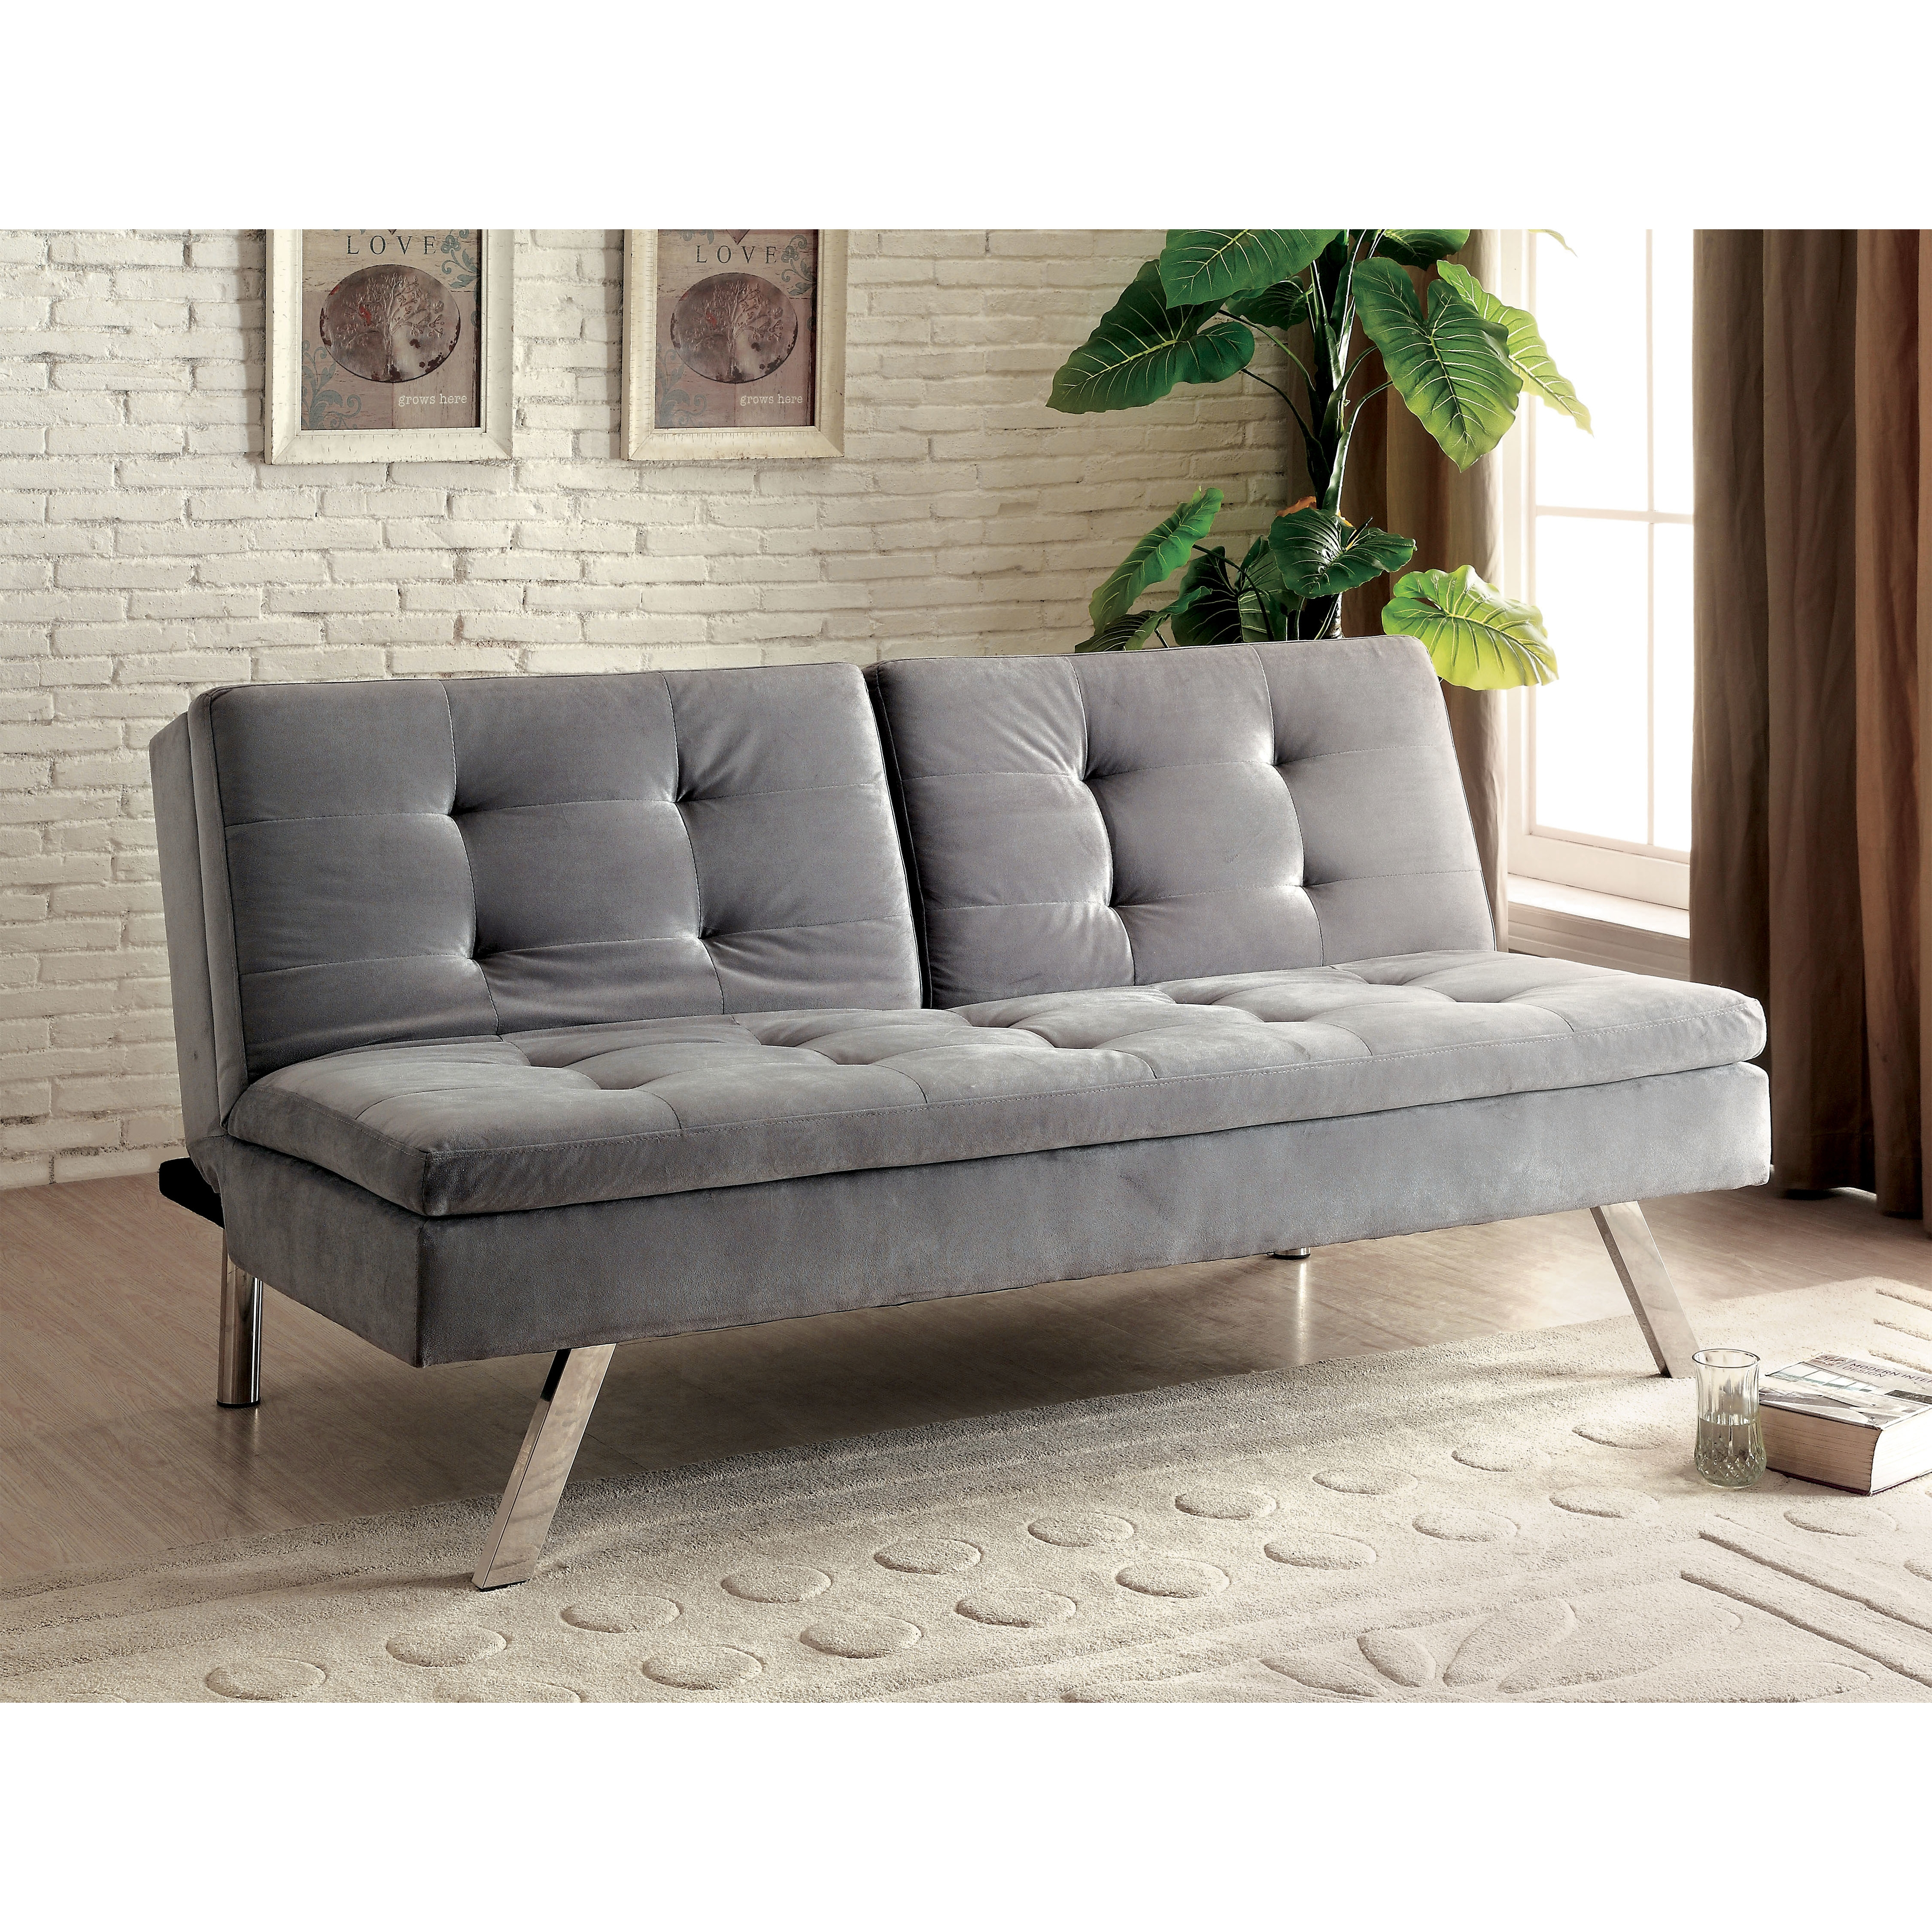 70 Sleeper Sofa Norwalk At Sofadealers Sofas Couches